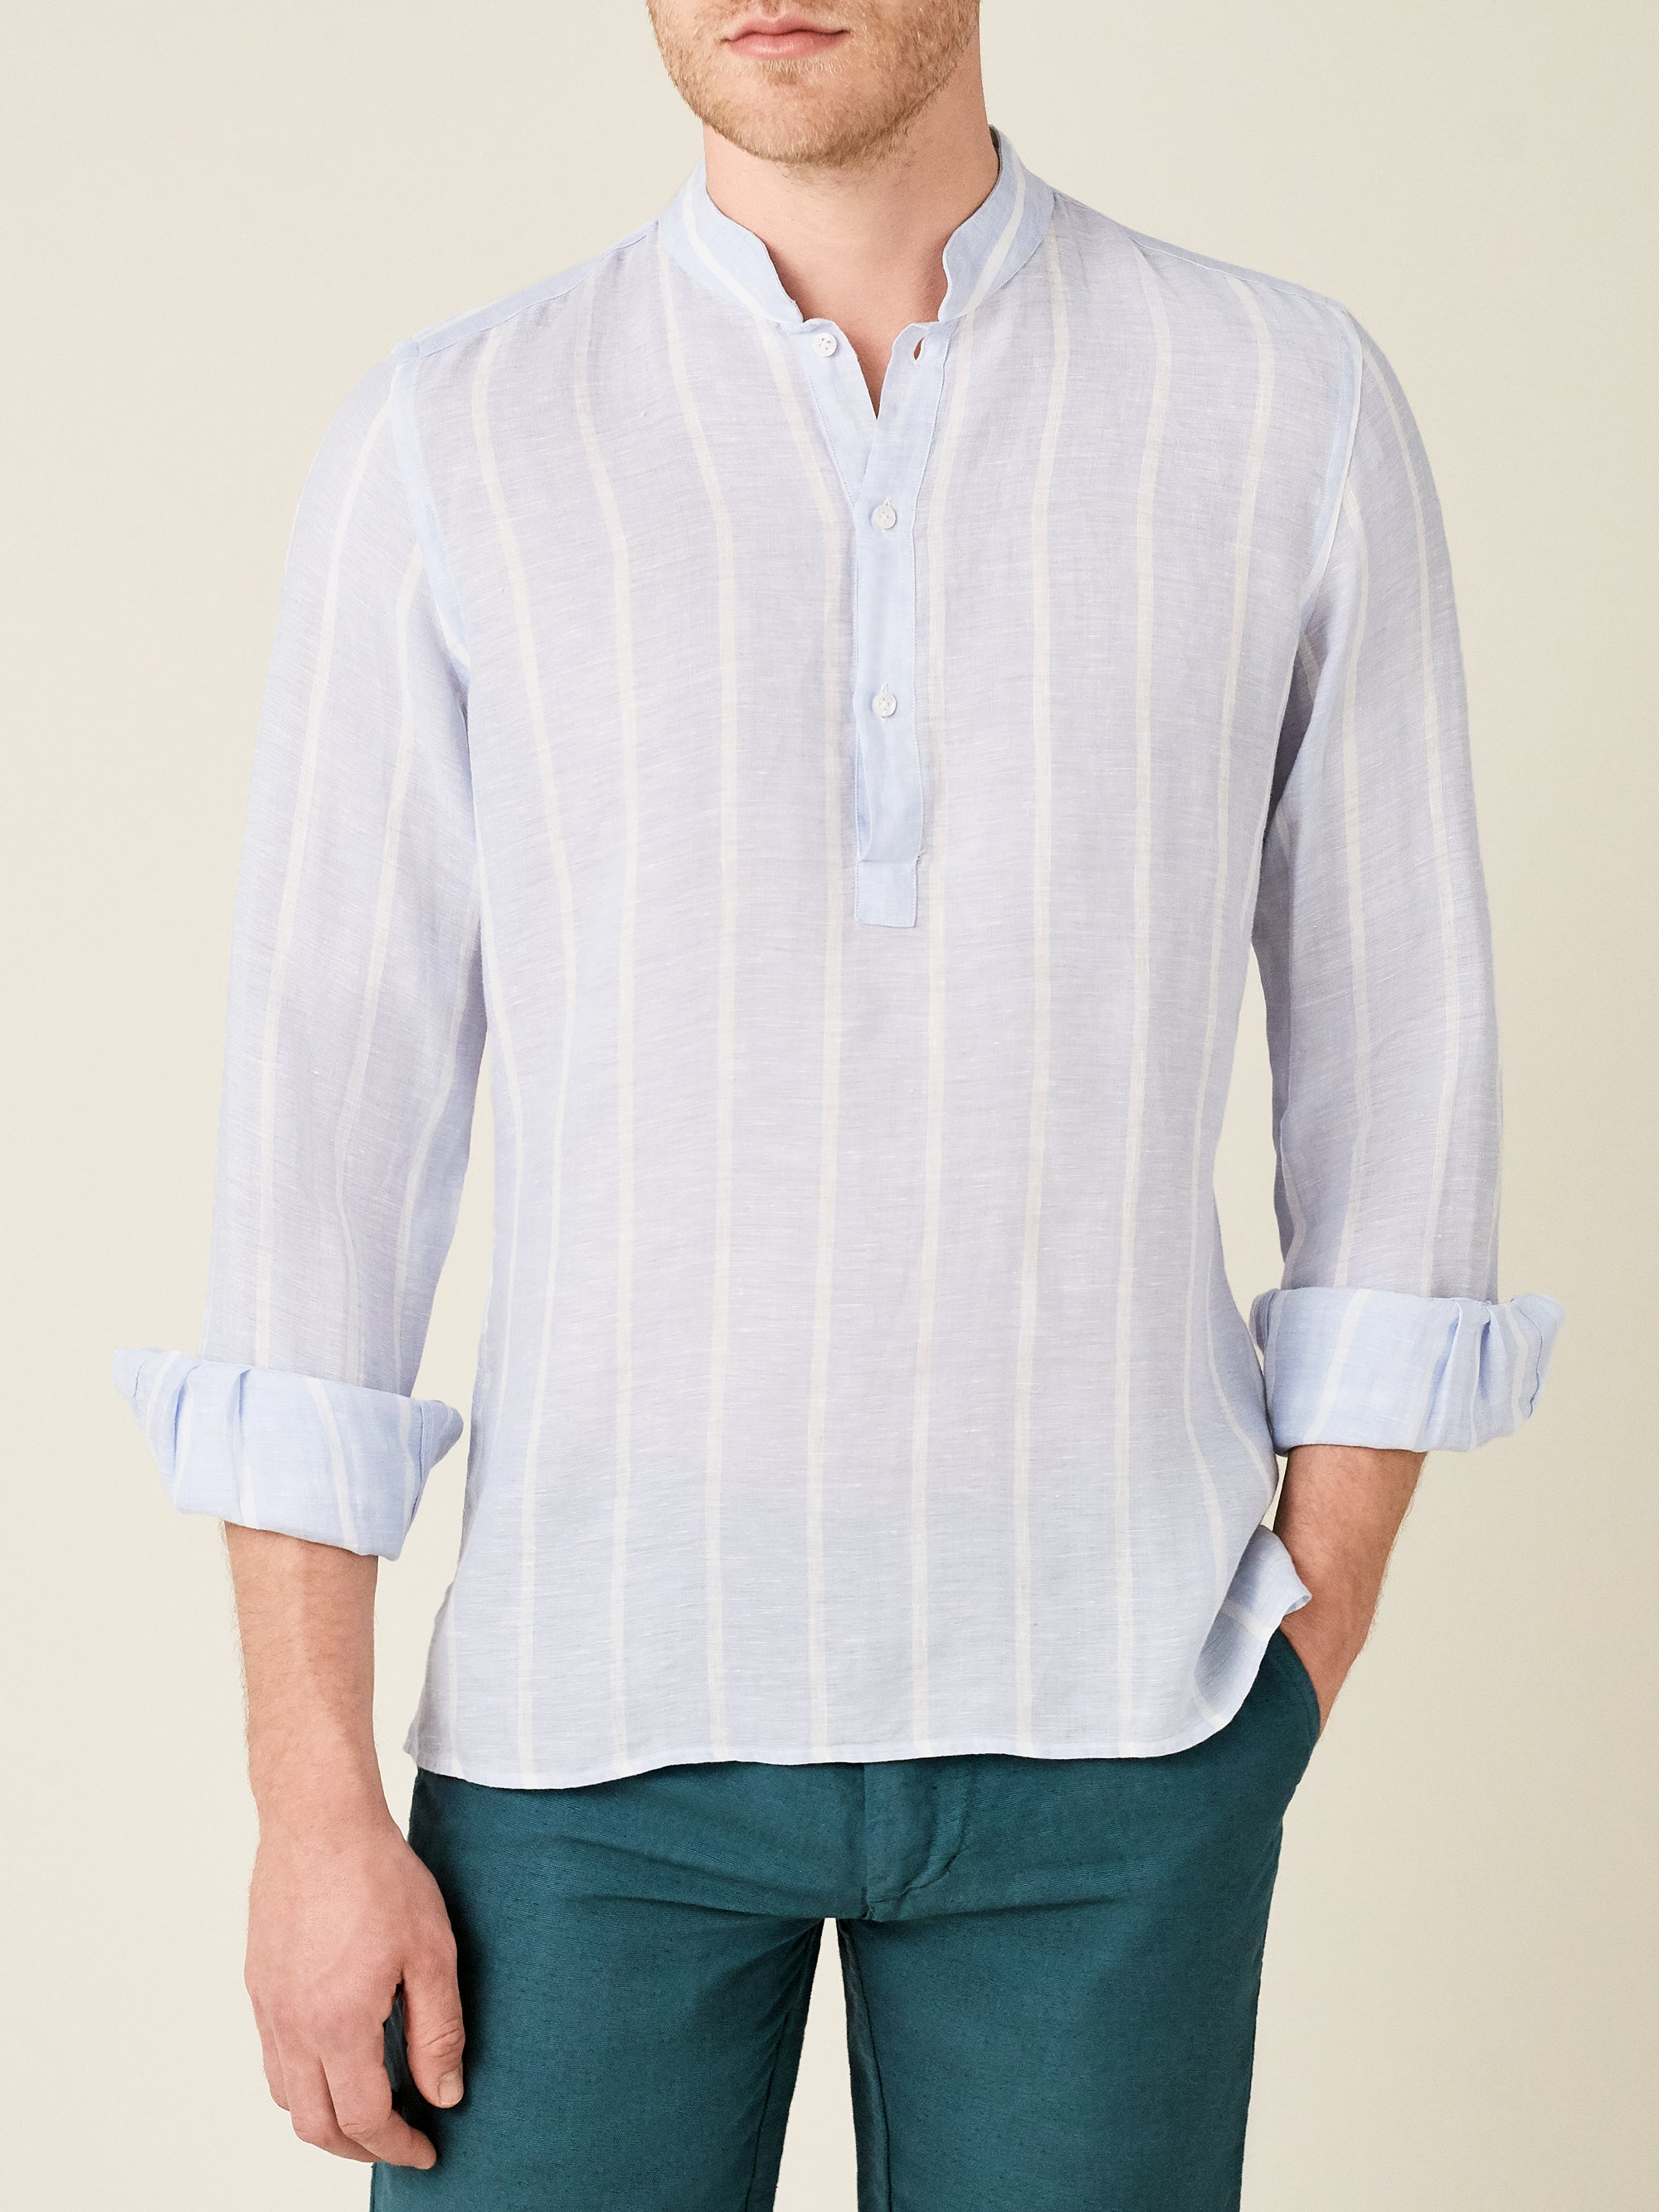 Luca Faloni Striped Forte Linen Shirt Made in Italy